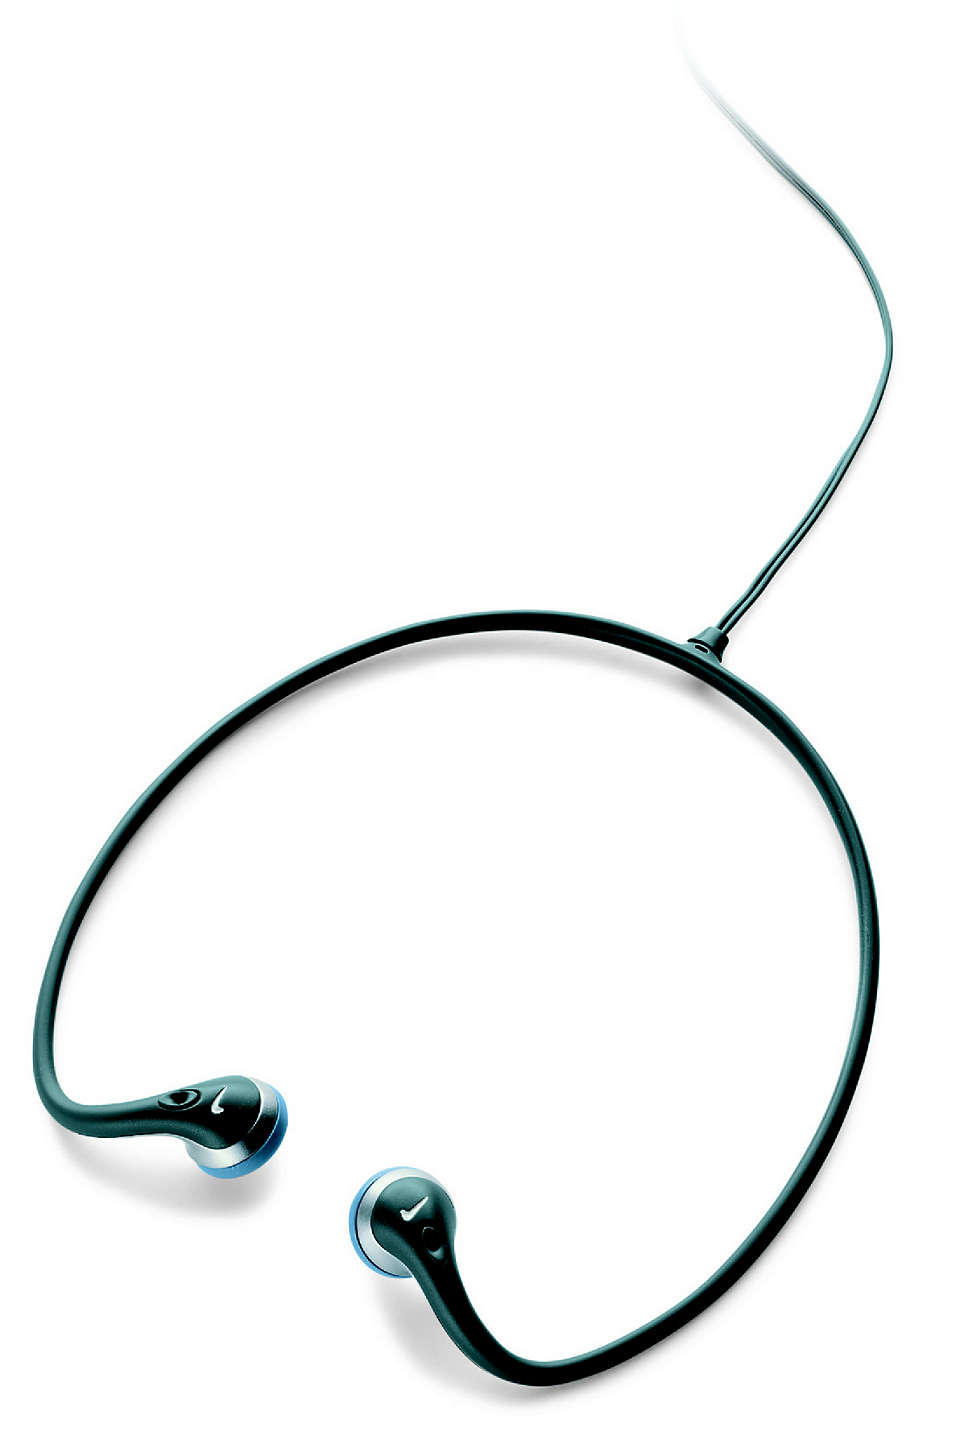 Lightweight neckband with smart cable design